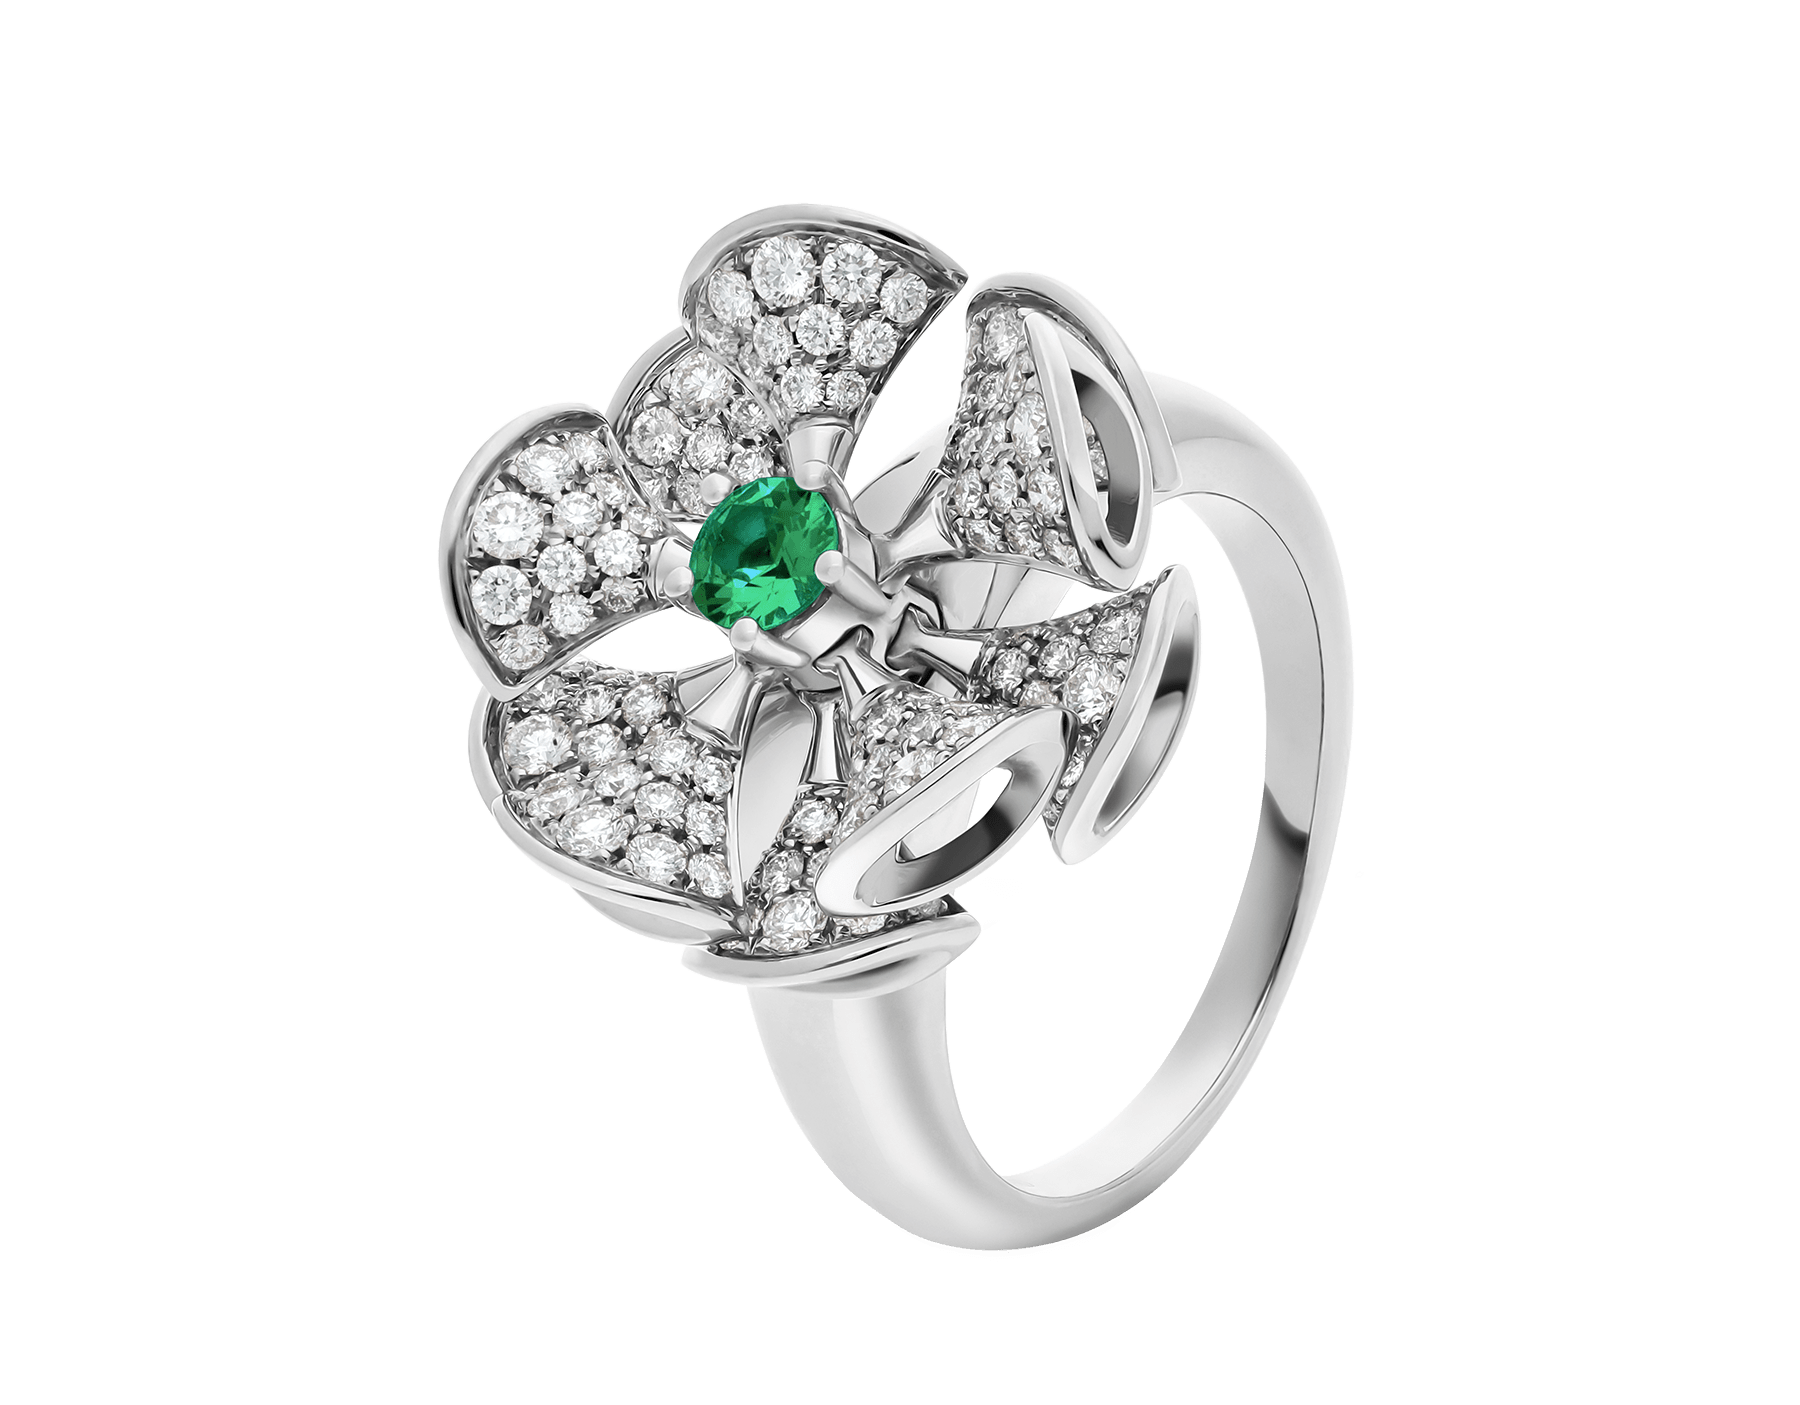 DIVAS' DREAM ring in 18 kt white gold, set with a central emerald and pavé diamonds. AN857988 image 1